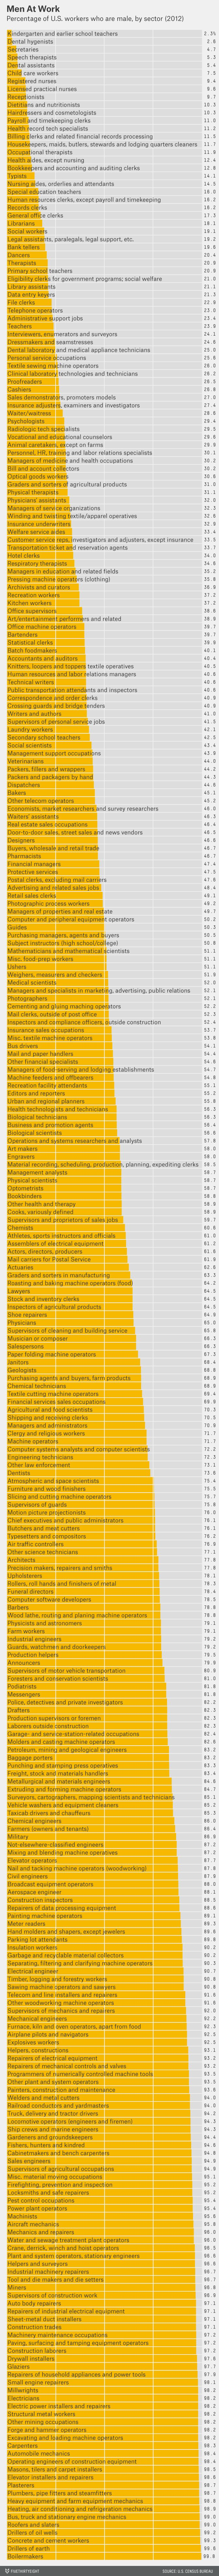 best images about infographics portal  occupations by gender ratio least to most male